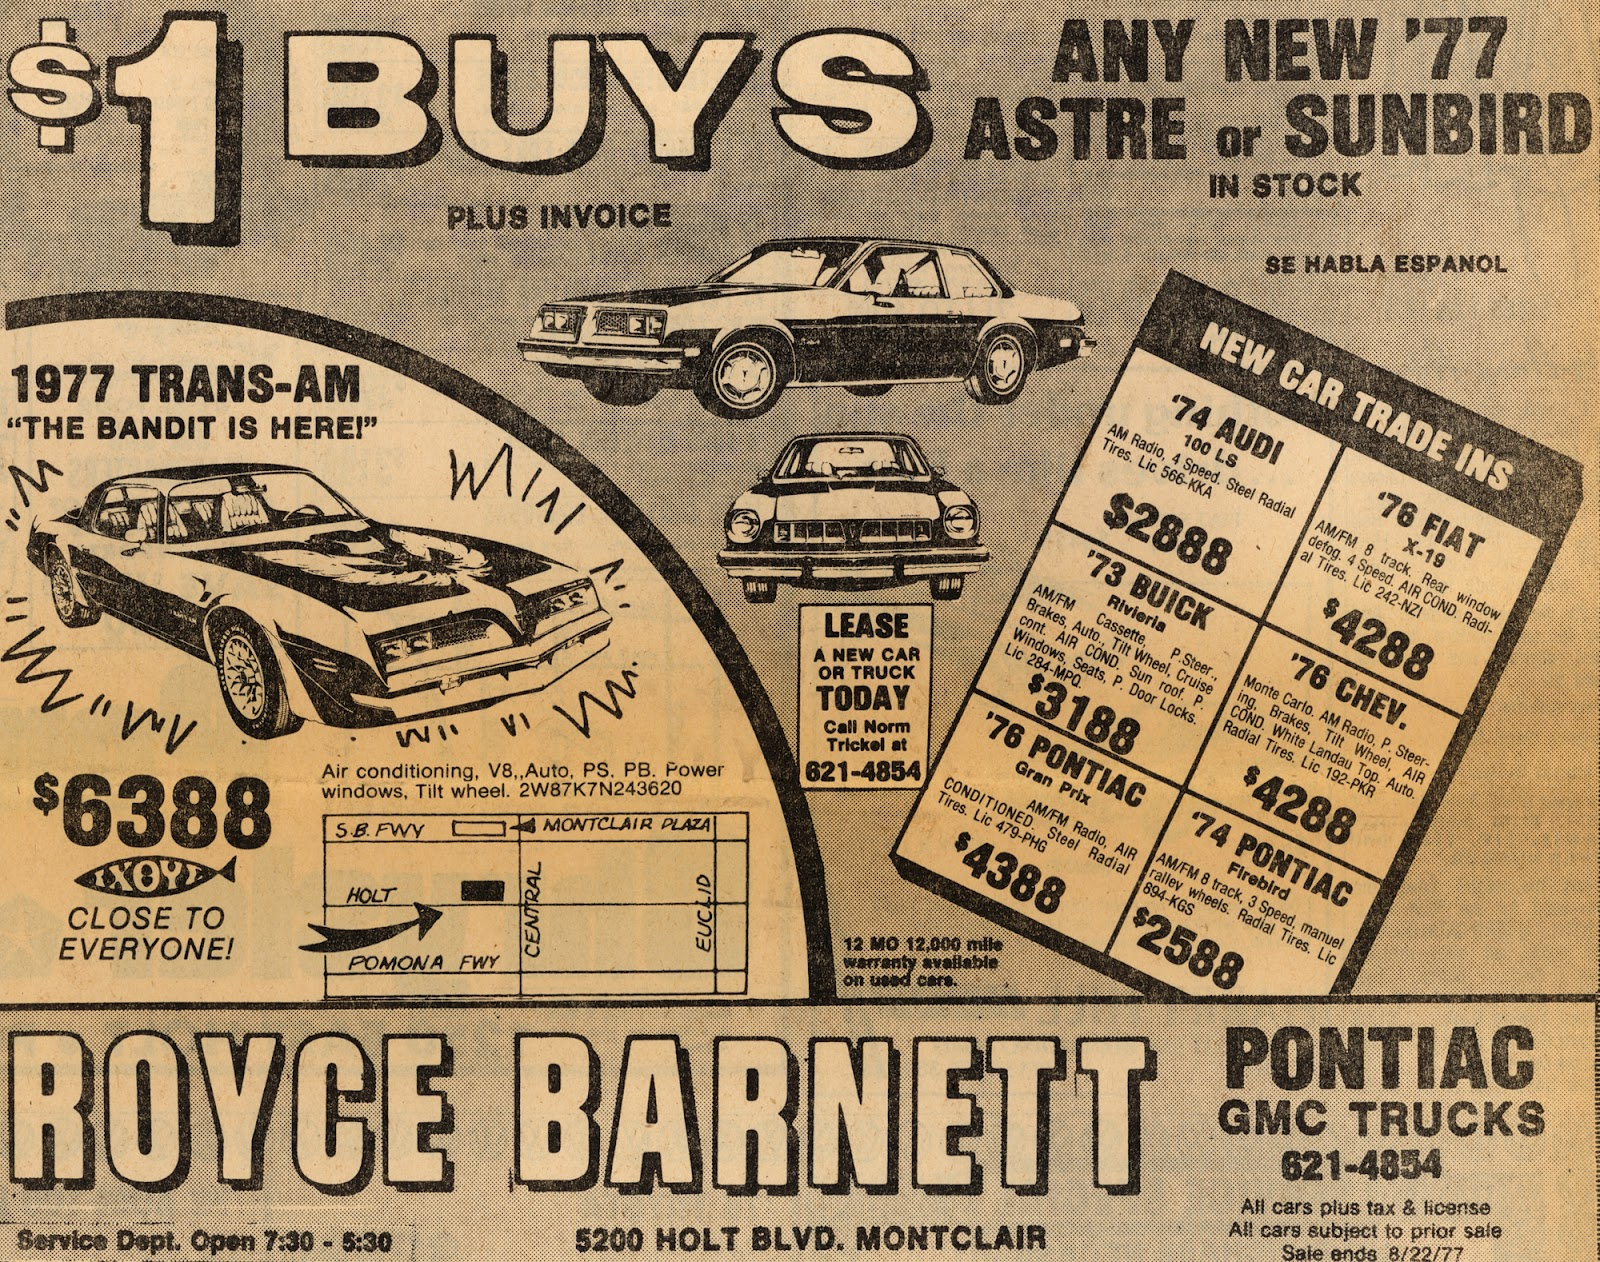 Fine Vintage Car Ads For Sale Photos - Classic Cars Ideas - boiq.info